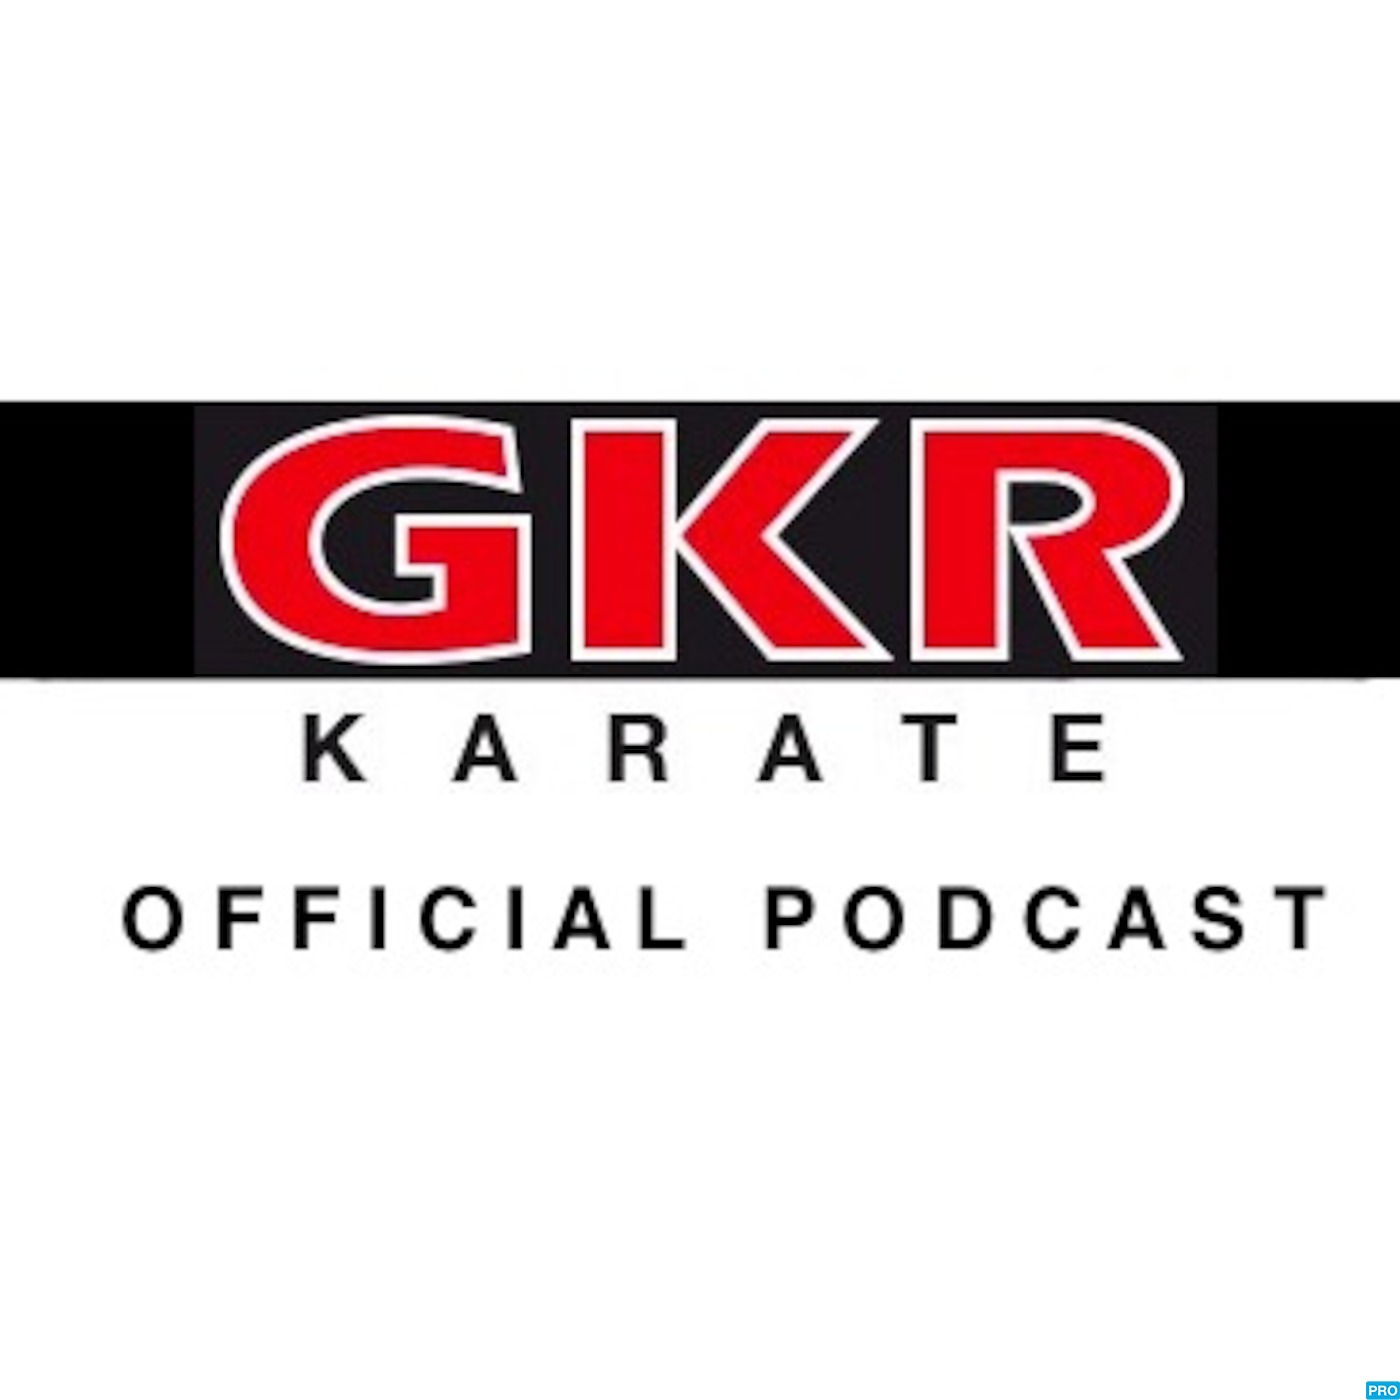 GKR Karate Official Podcast